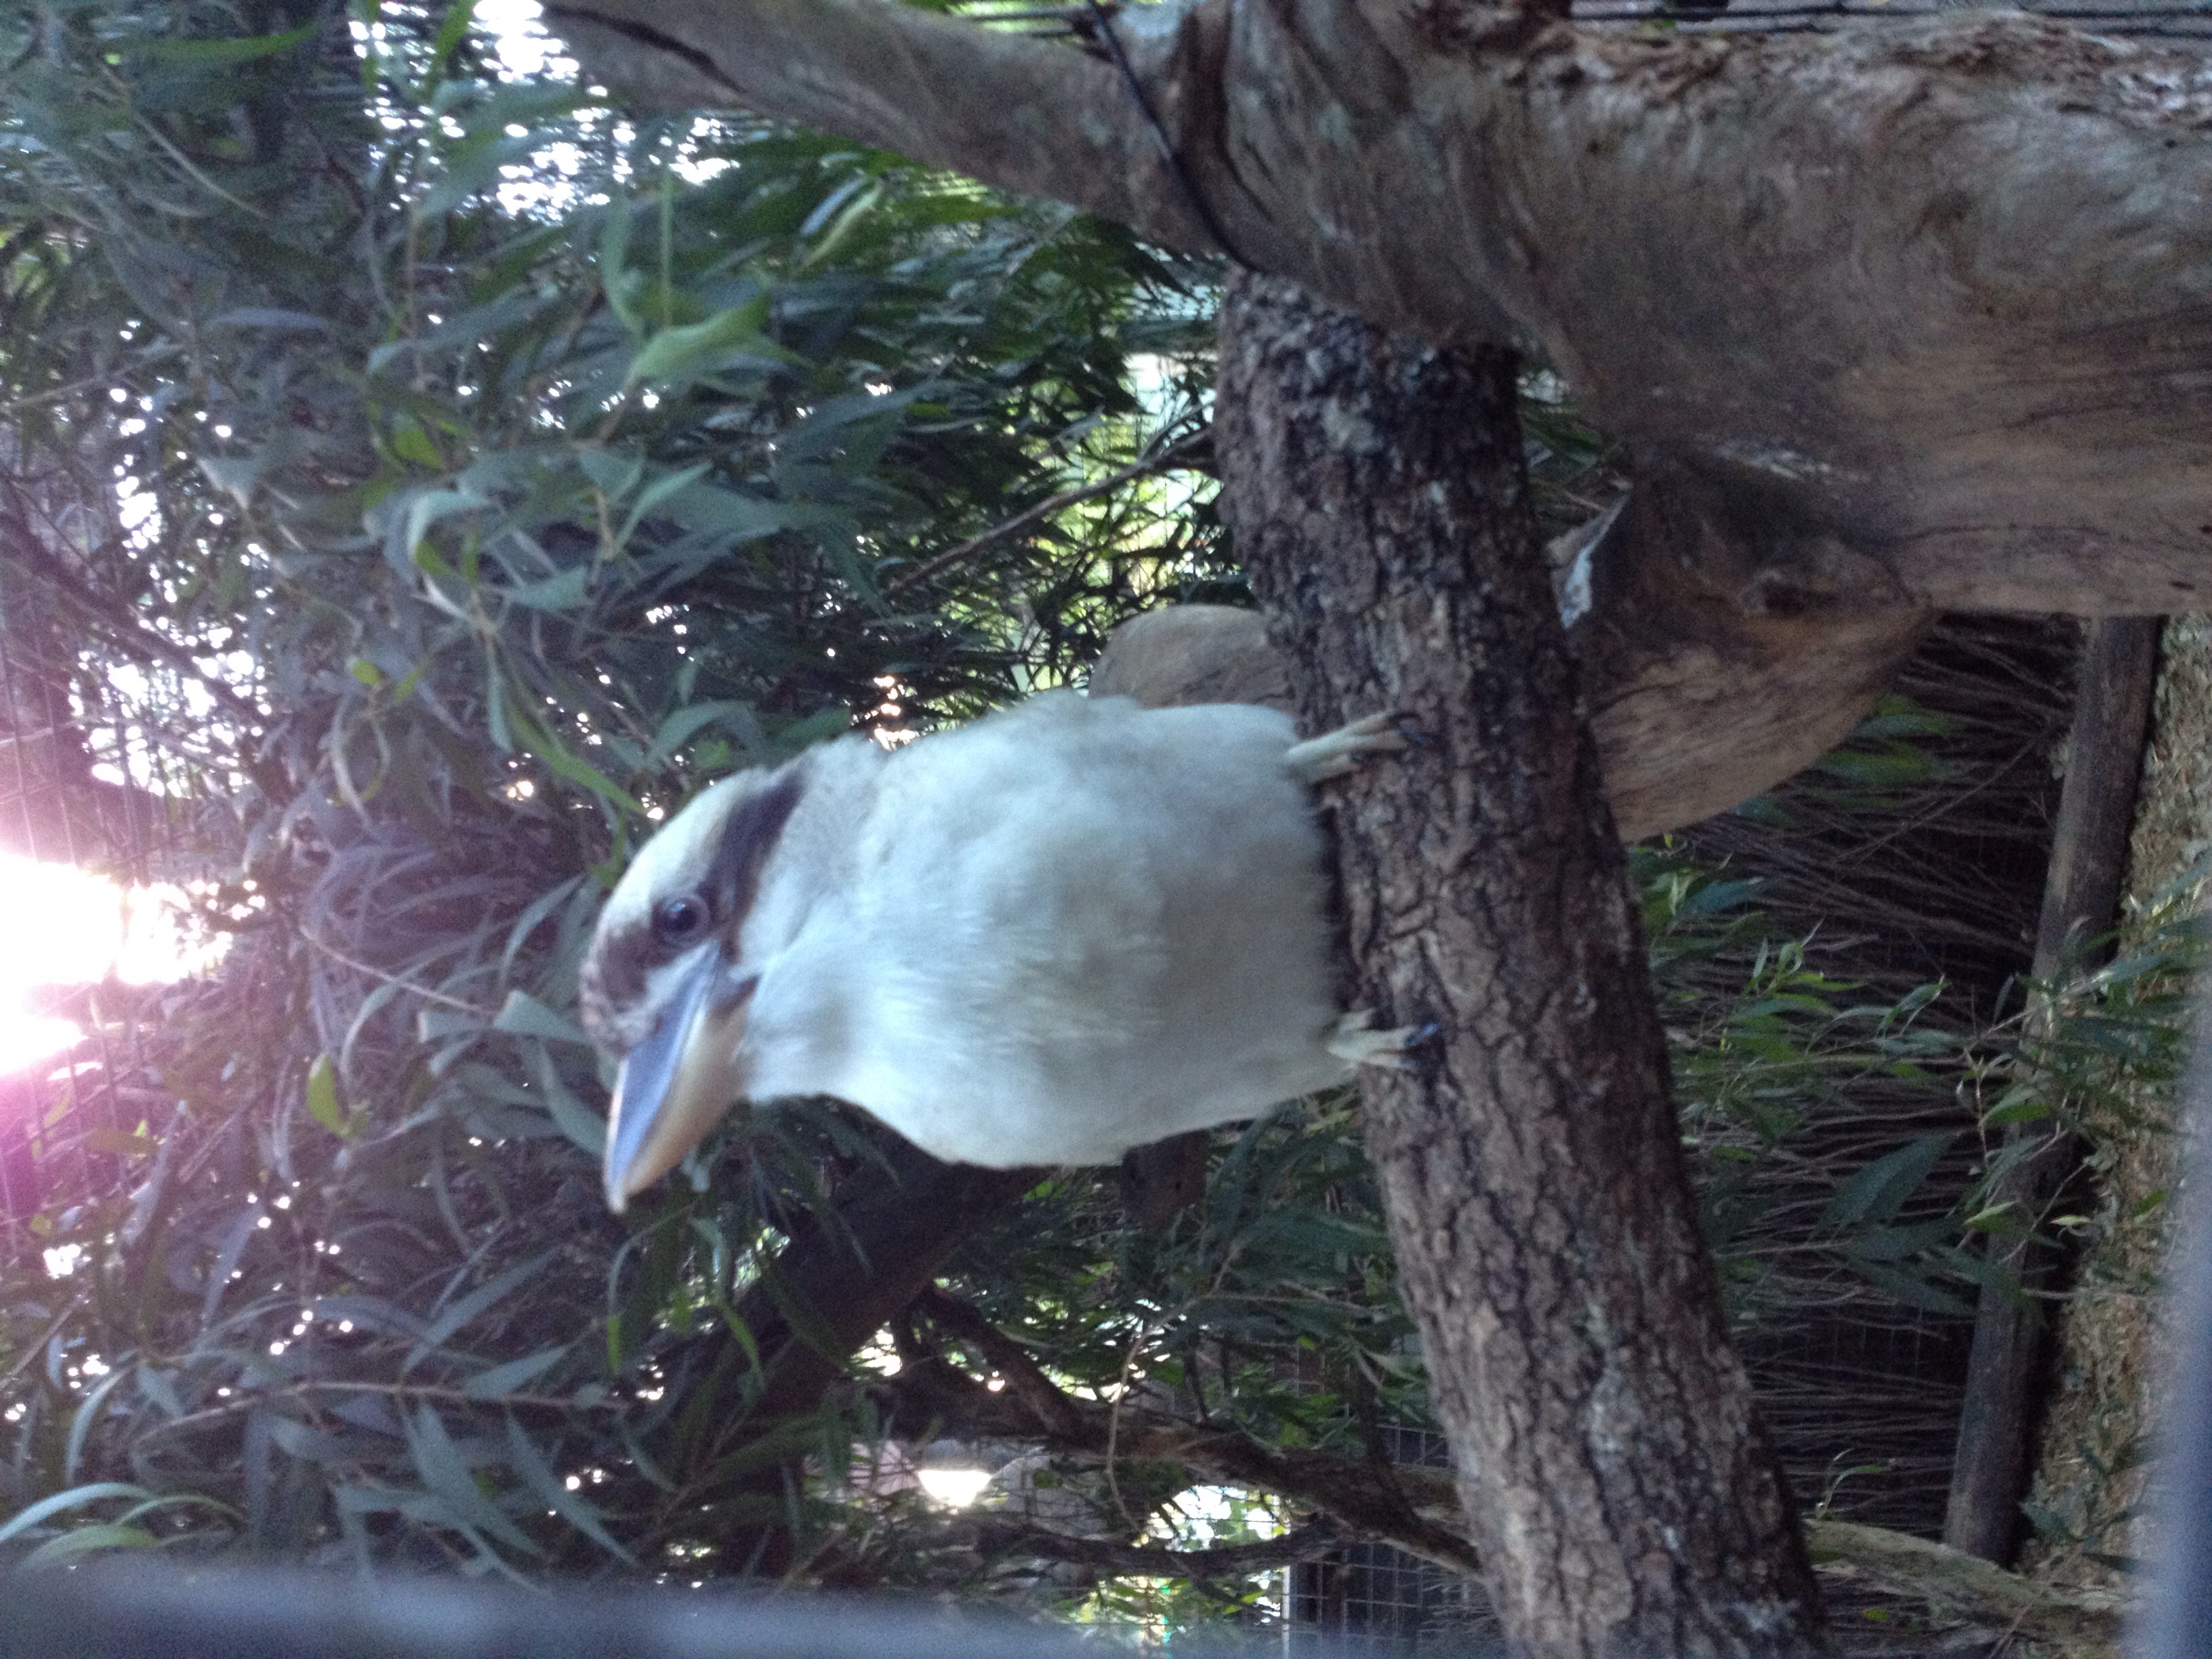 Sitting in the old gum tree